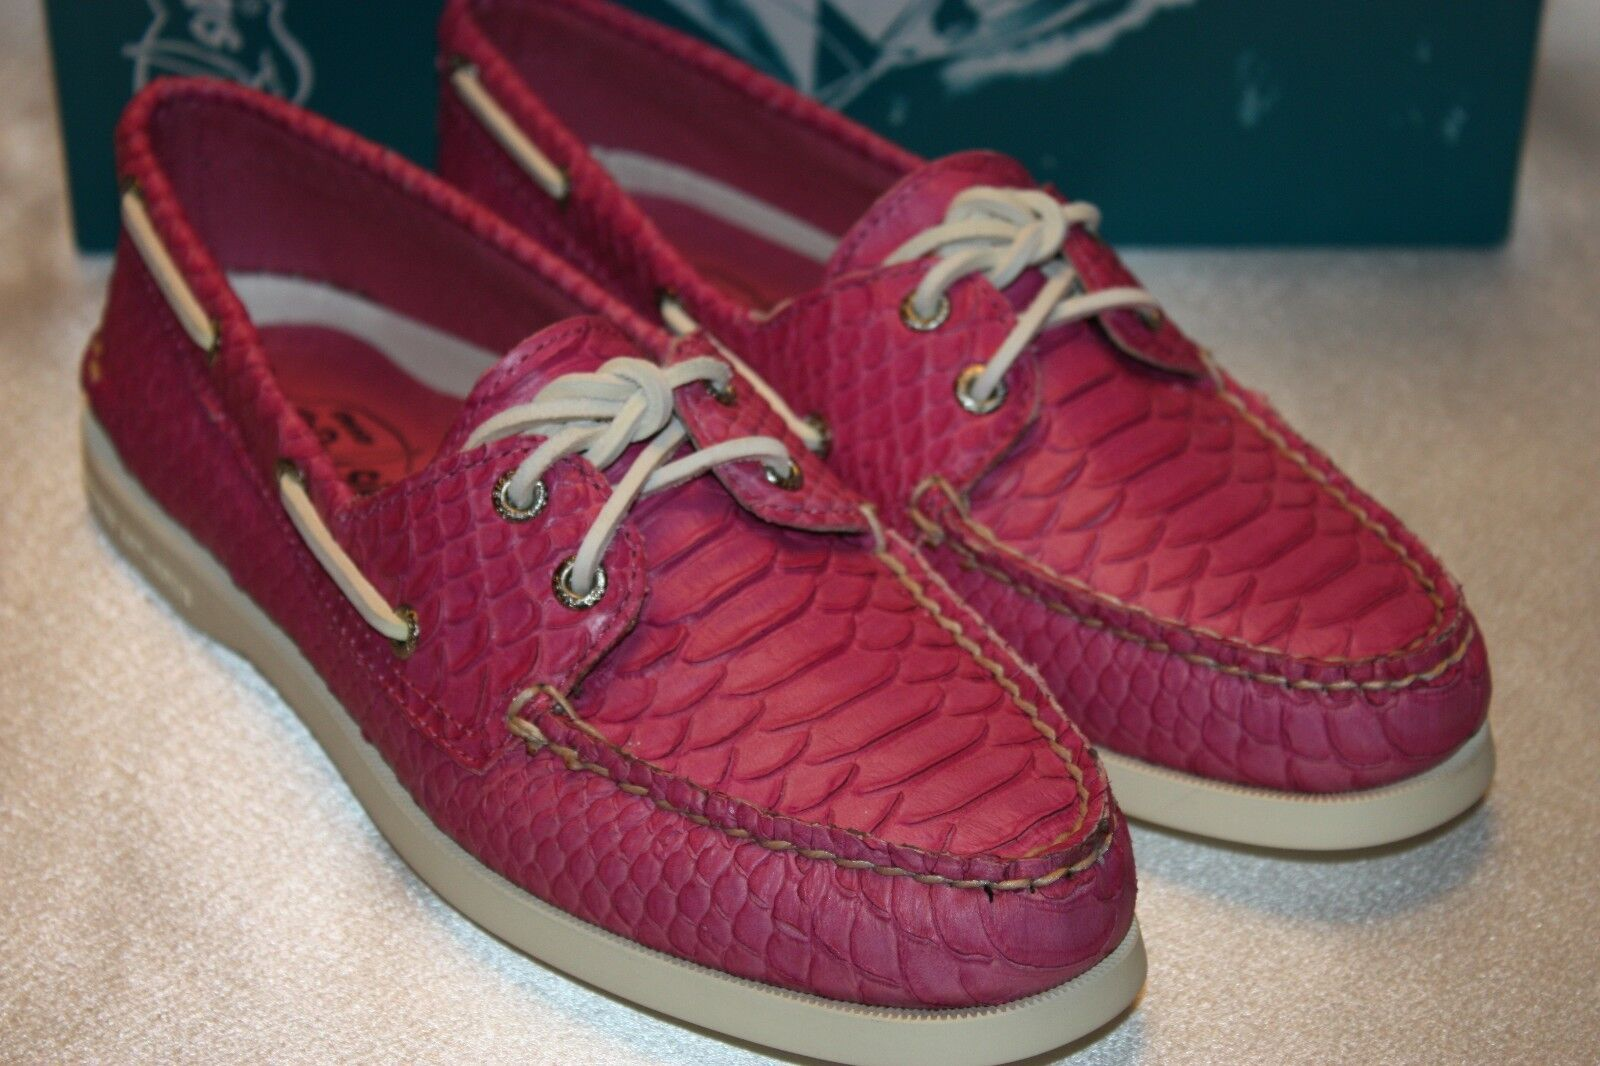 NEW  NIB Sperry Top Sider A/O 2 Eye Pink Python Print Snake Boat Schuhes Sz 8 150